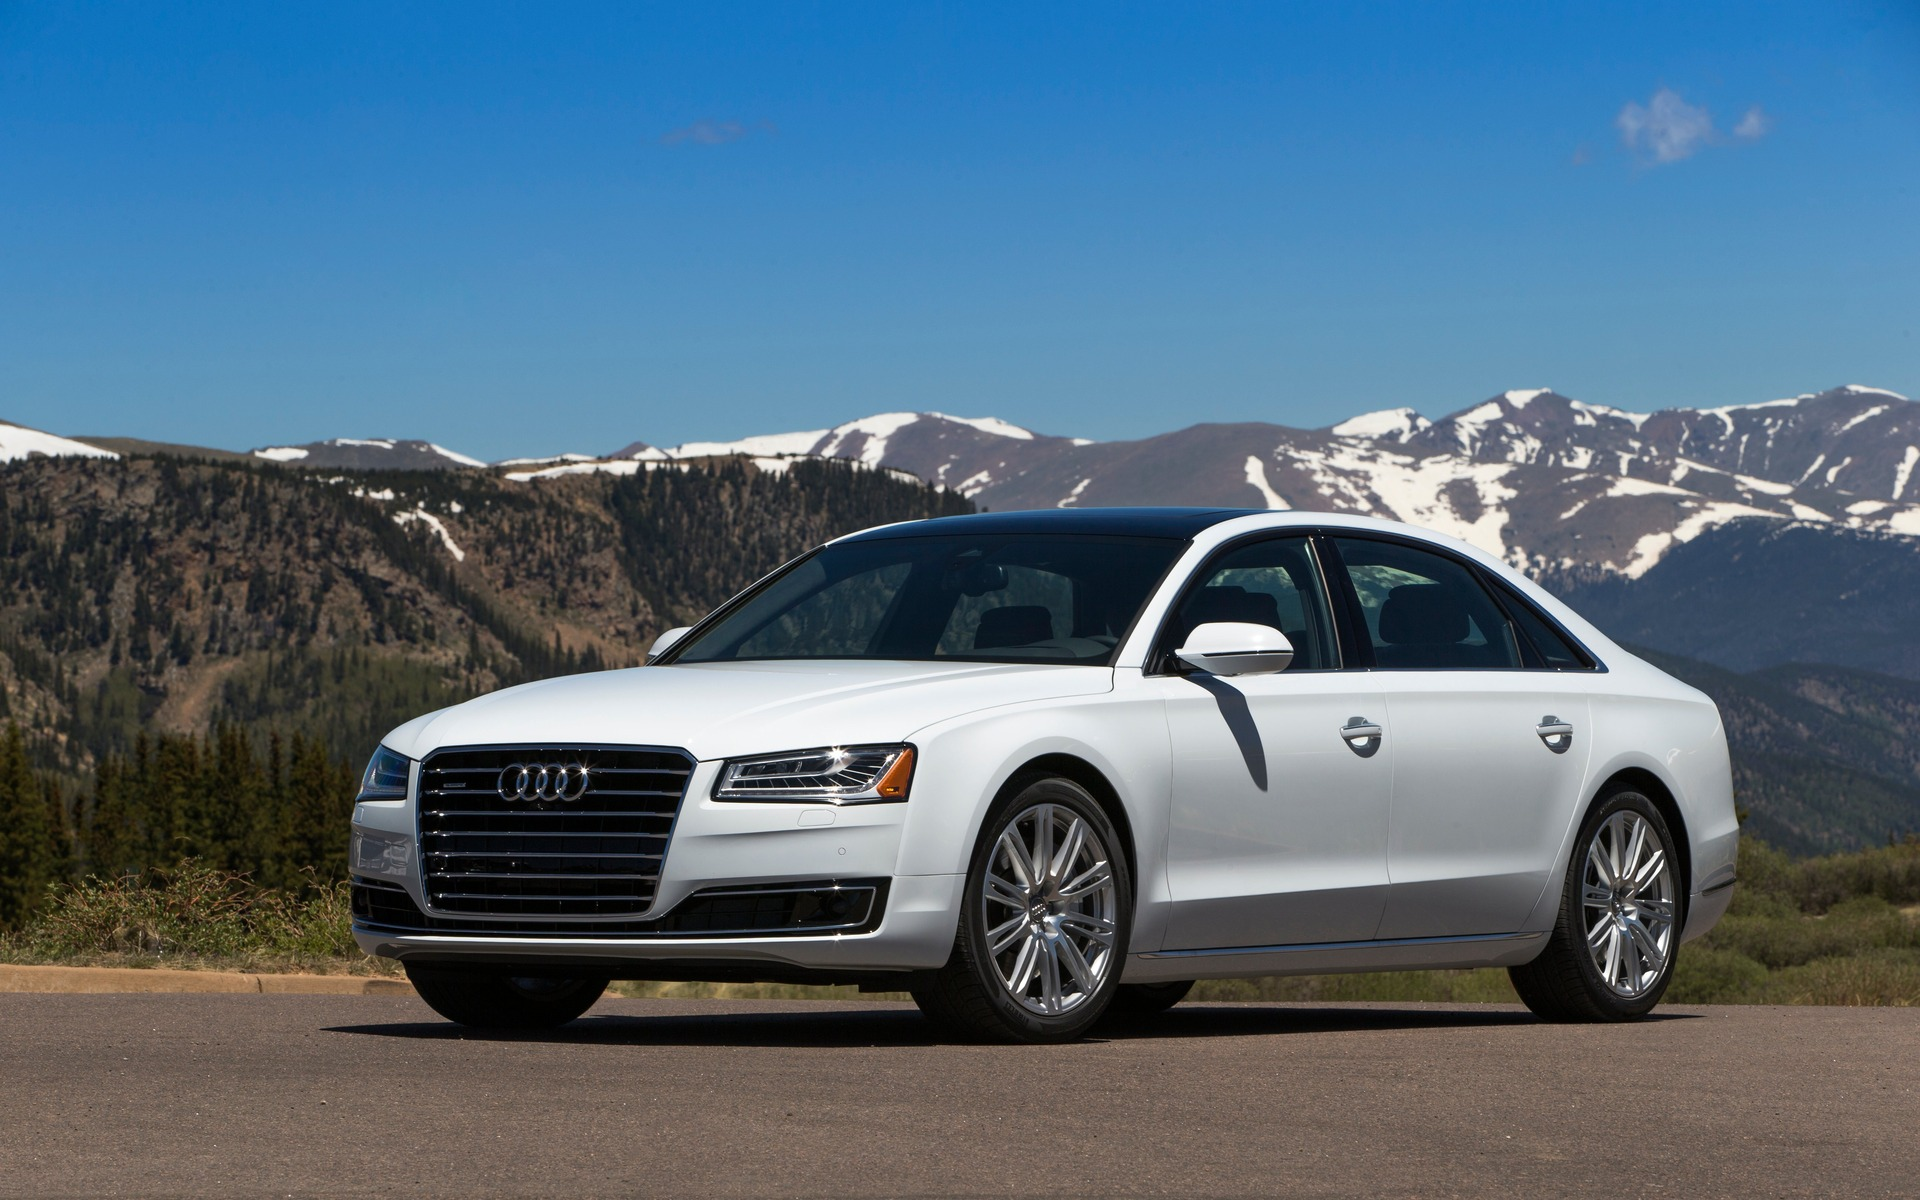 2016 Audi A8 Photos 1 4 The Car Guide